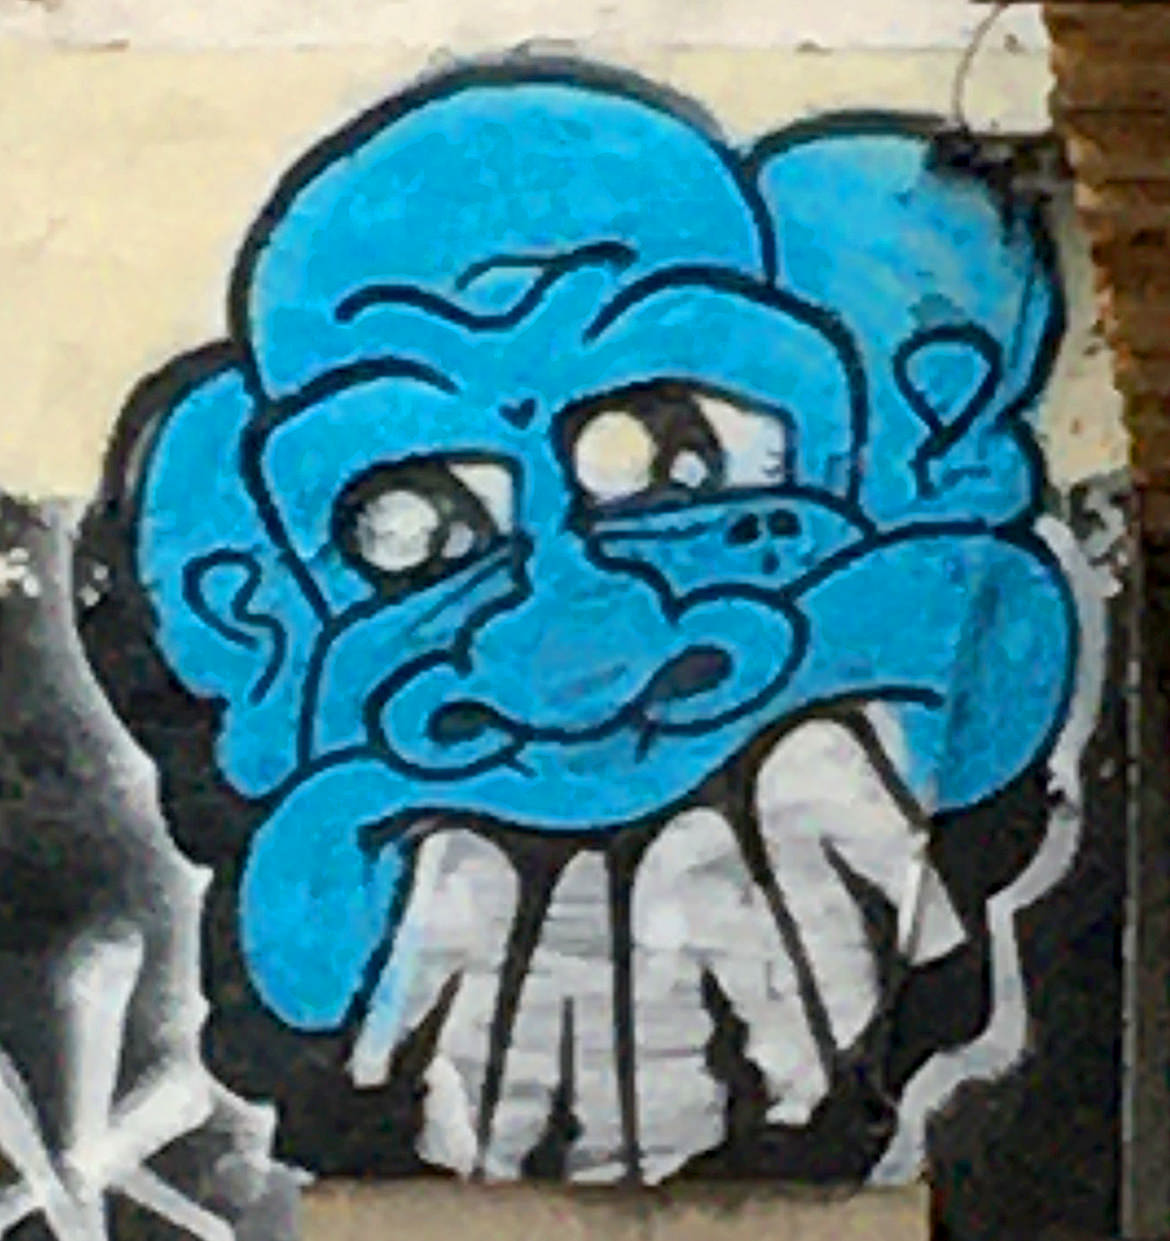 Spray paint graffiti blue cartoon face with large white buck teeth